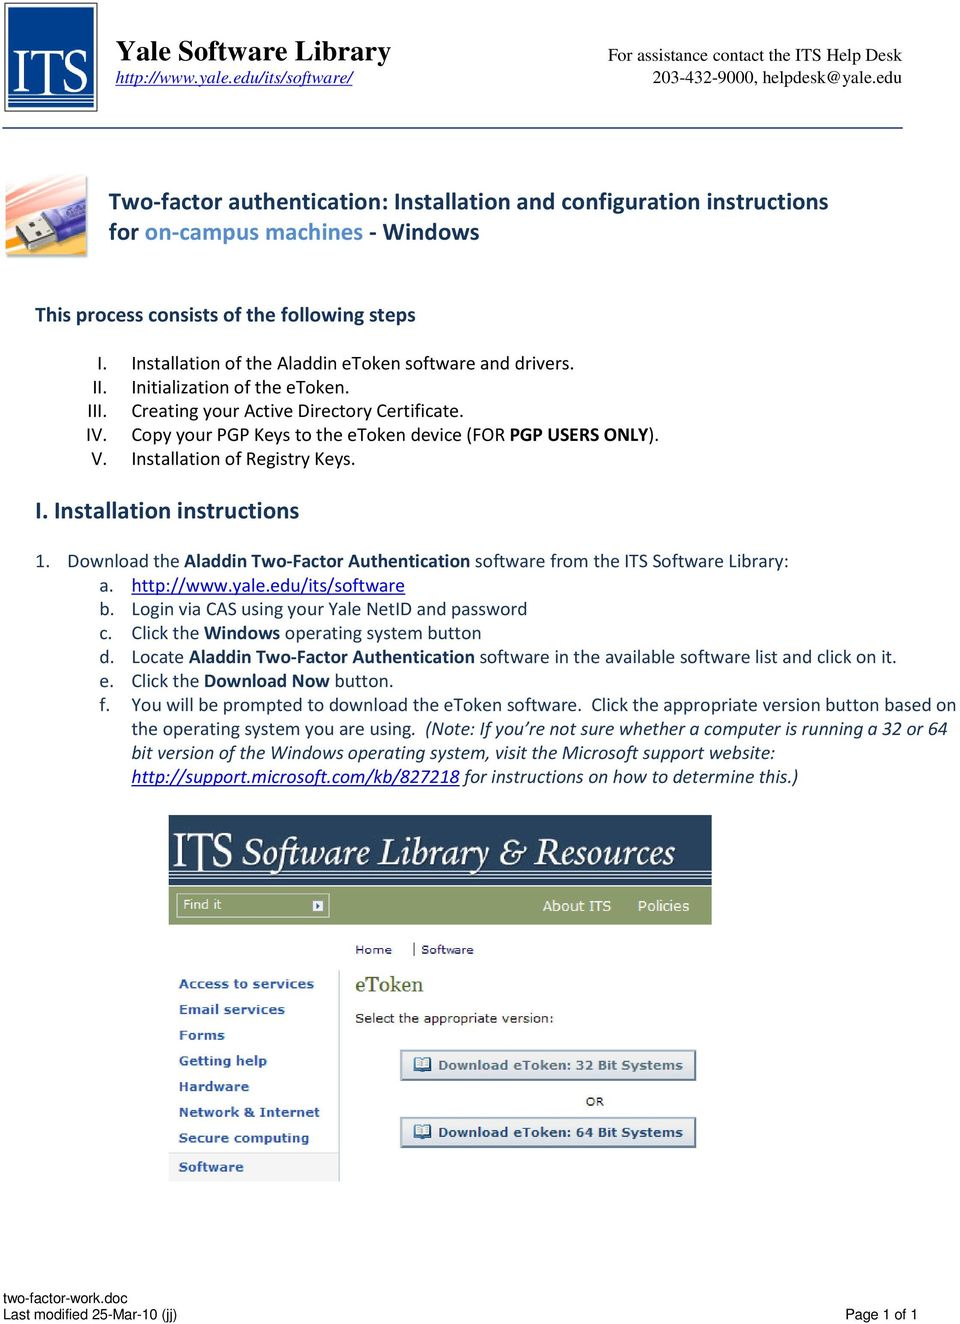 Installation of the Aladdin etoken software and drivers. II. Initialization of the etoken. III. Creating your Active Directory Certificate. IV.